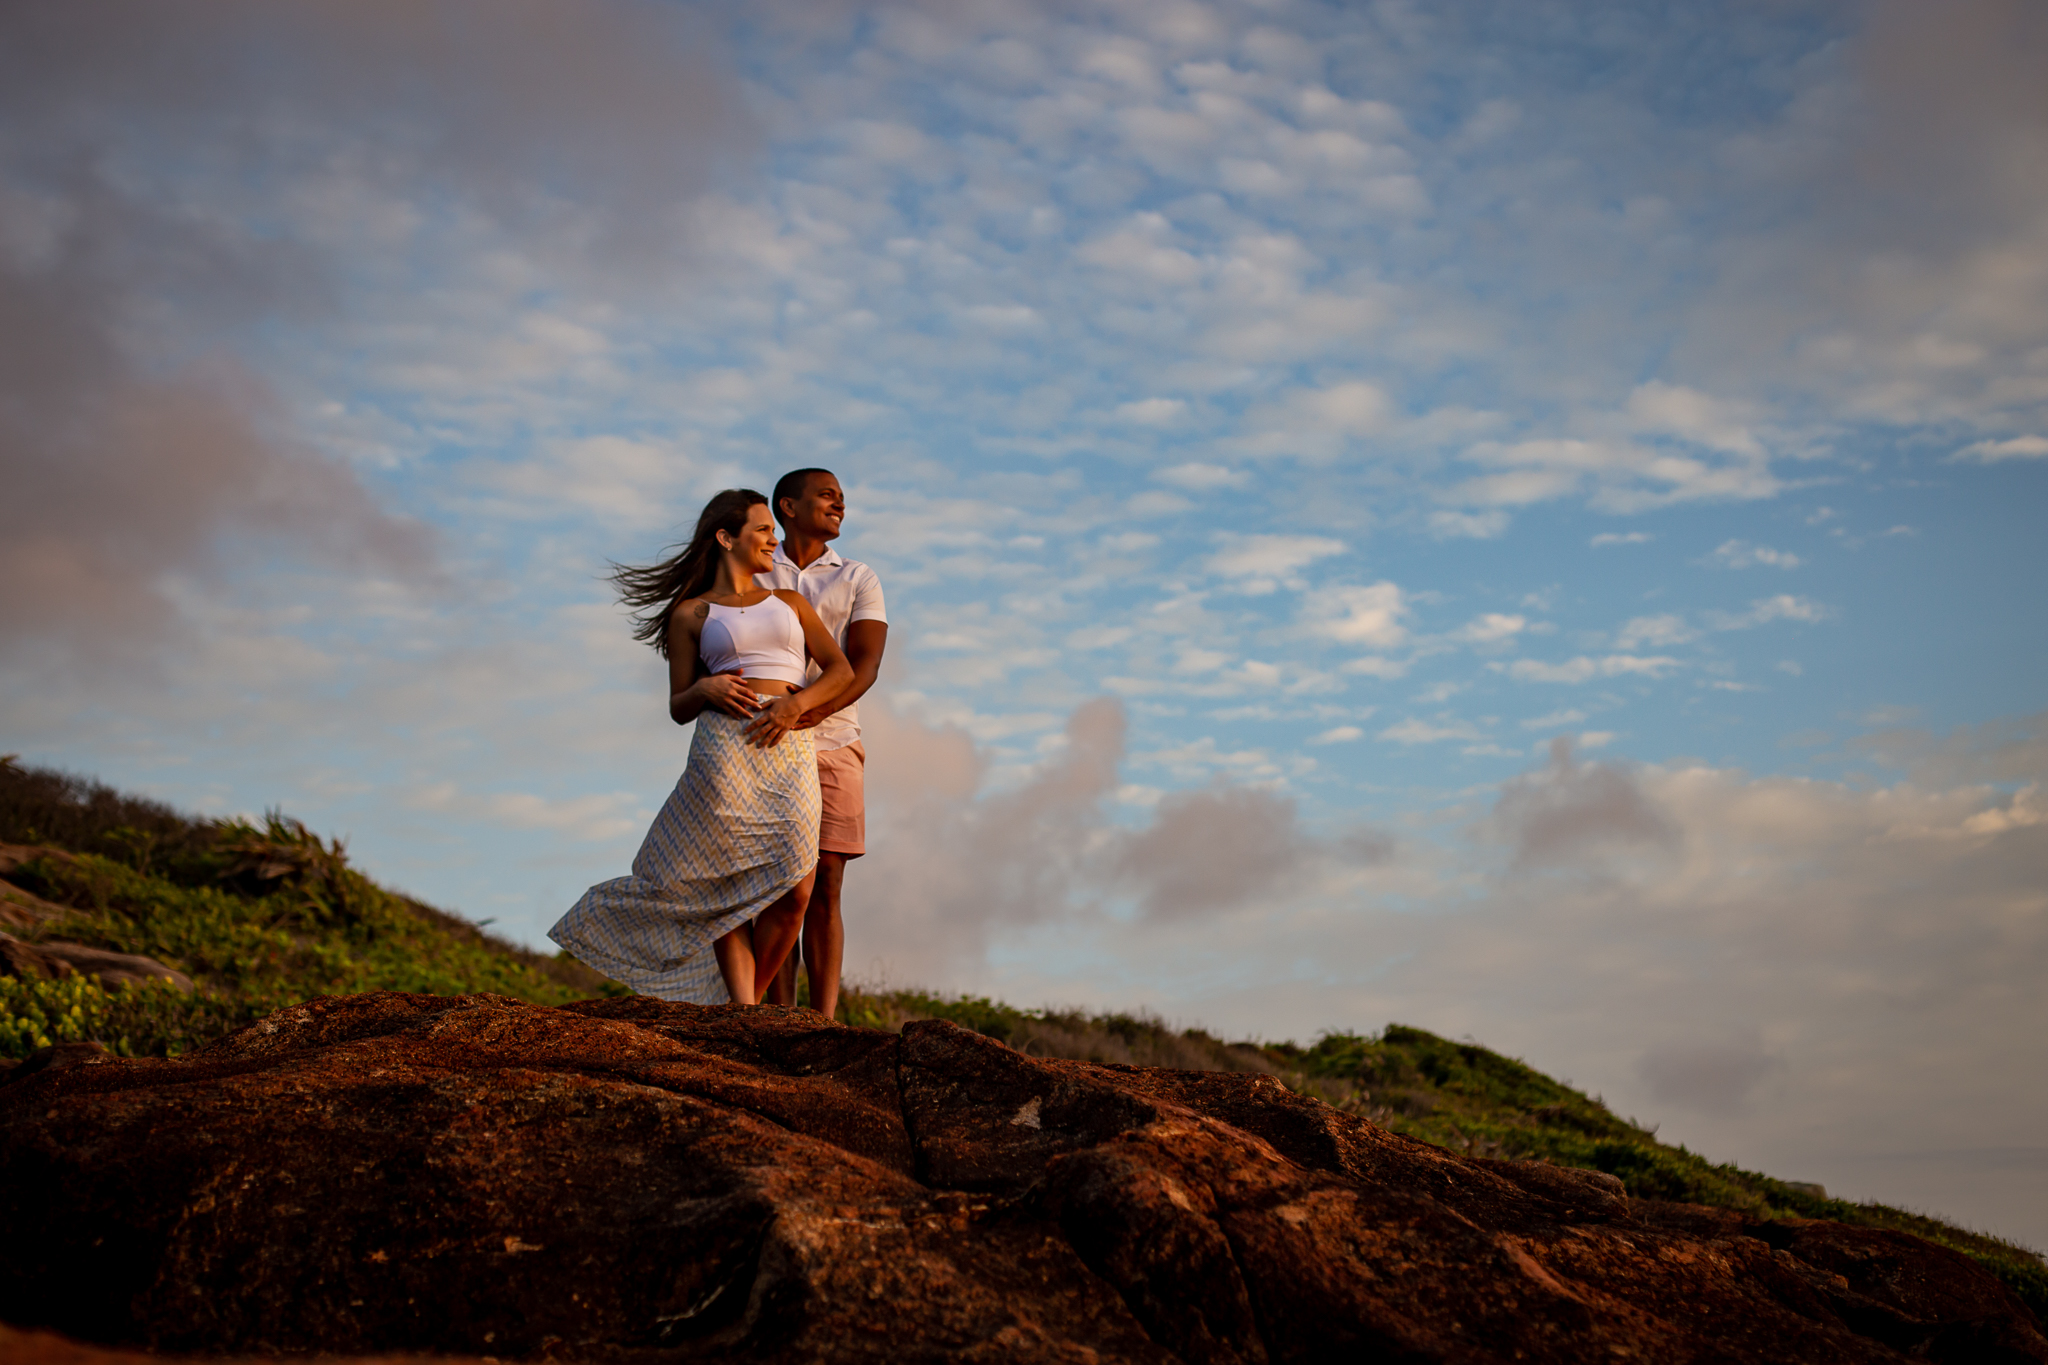 sunrise-engagement-photos-14.jpg